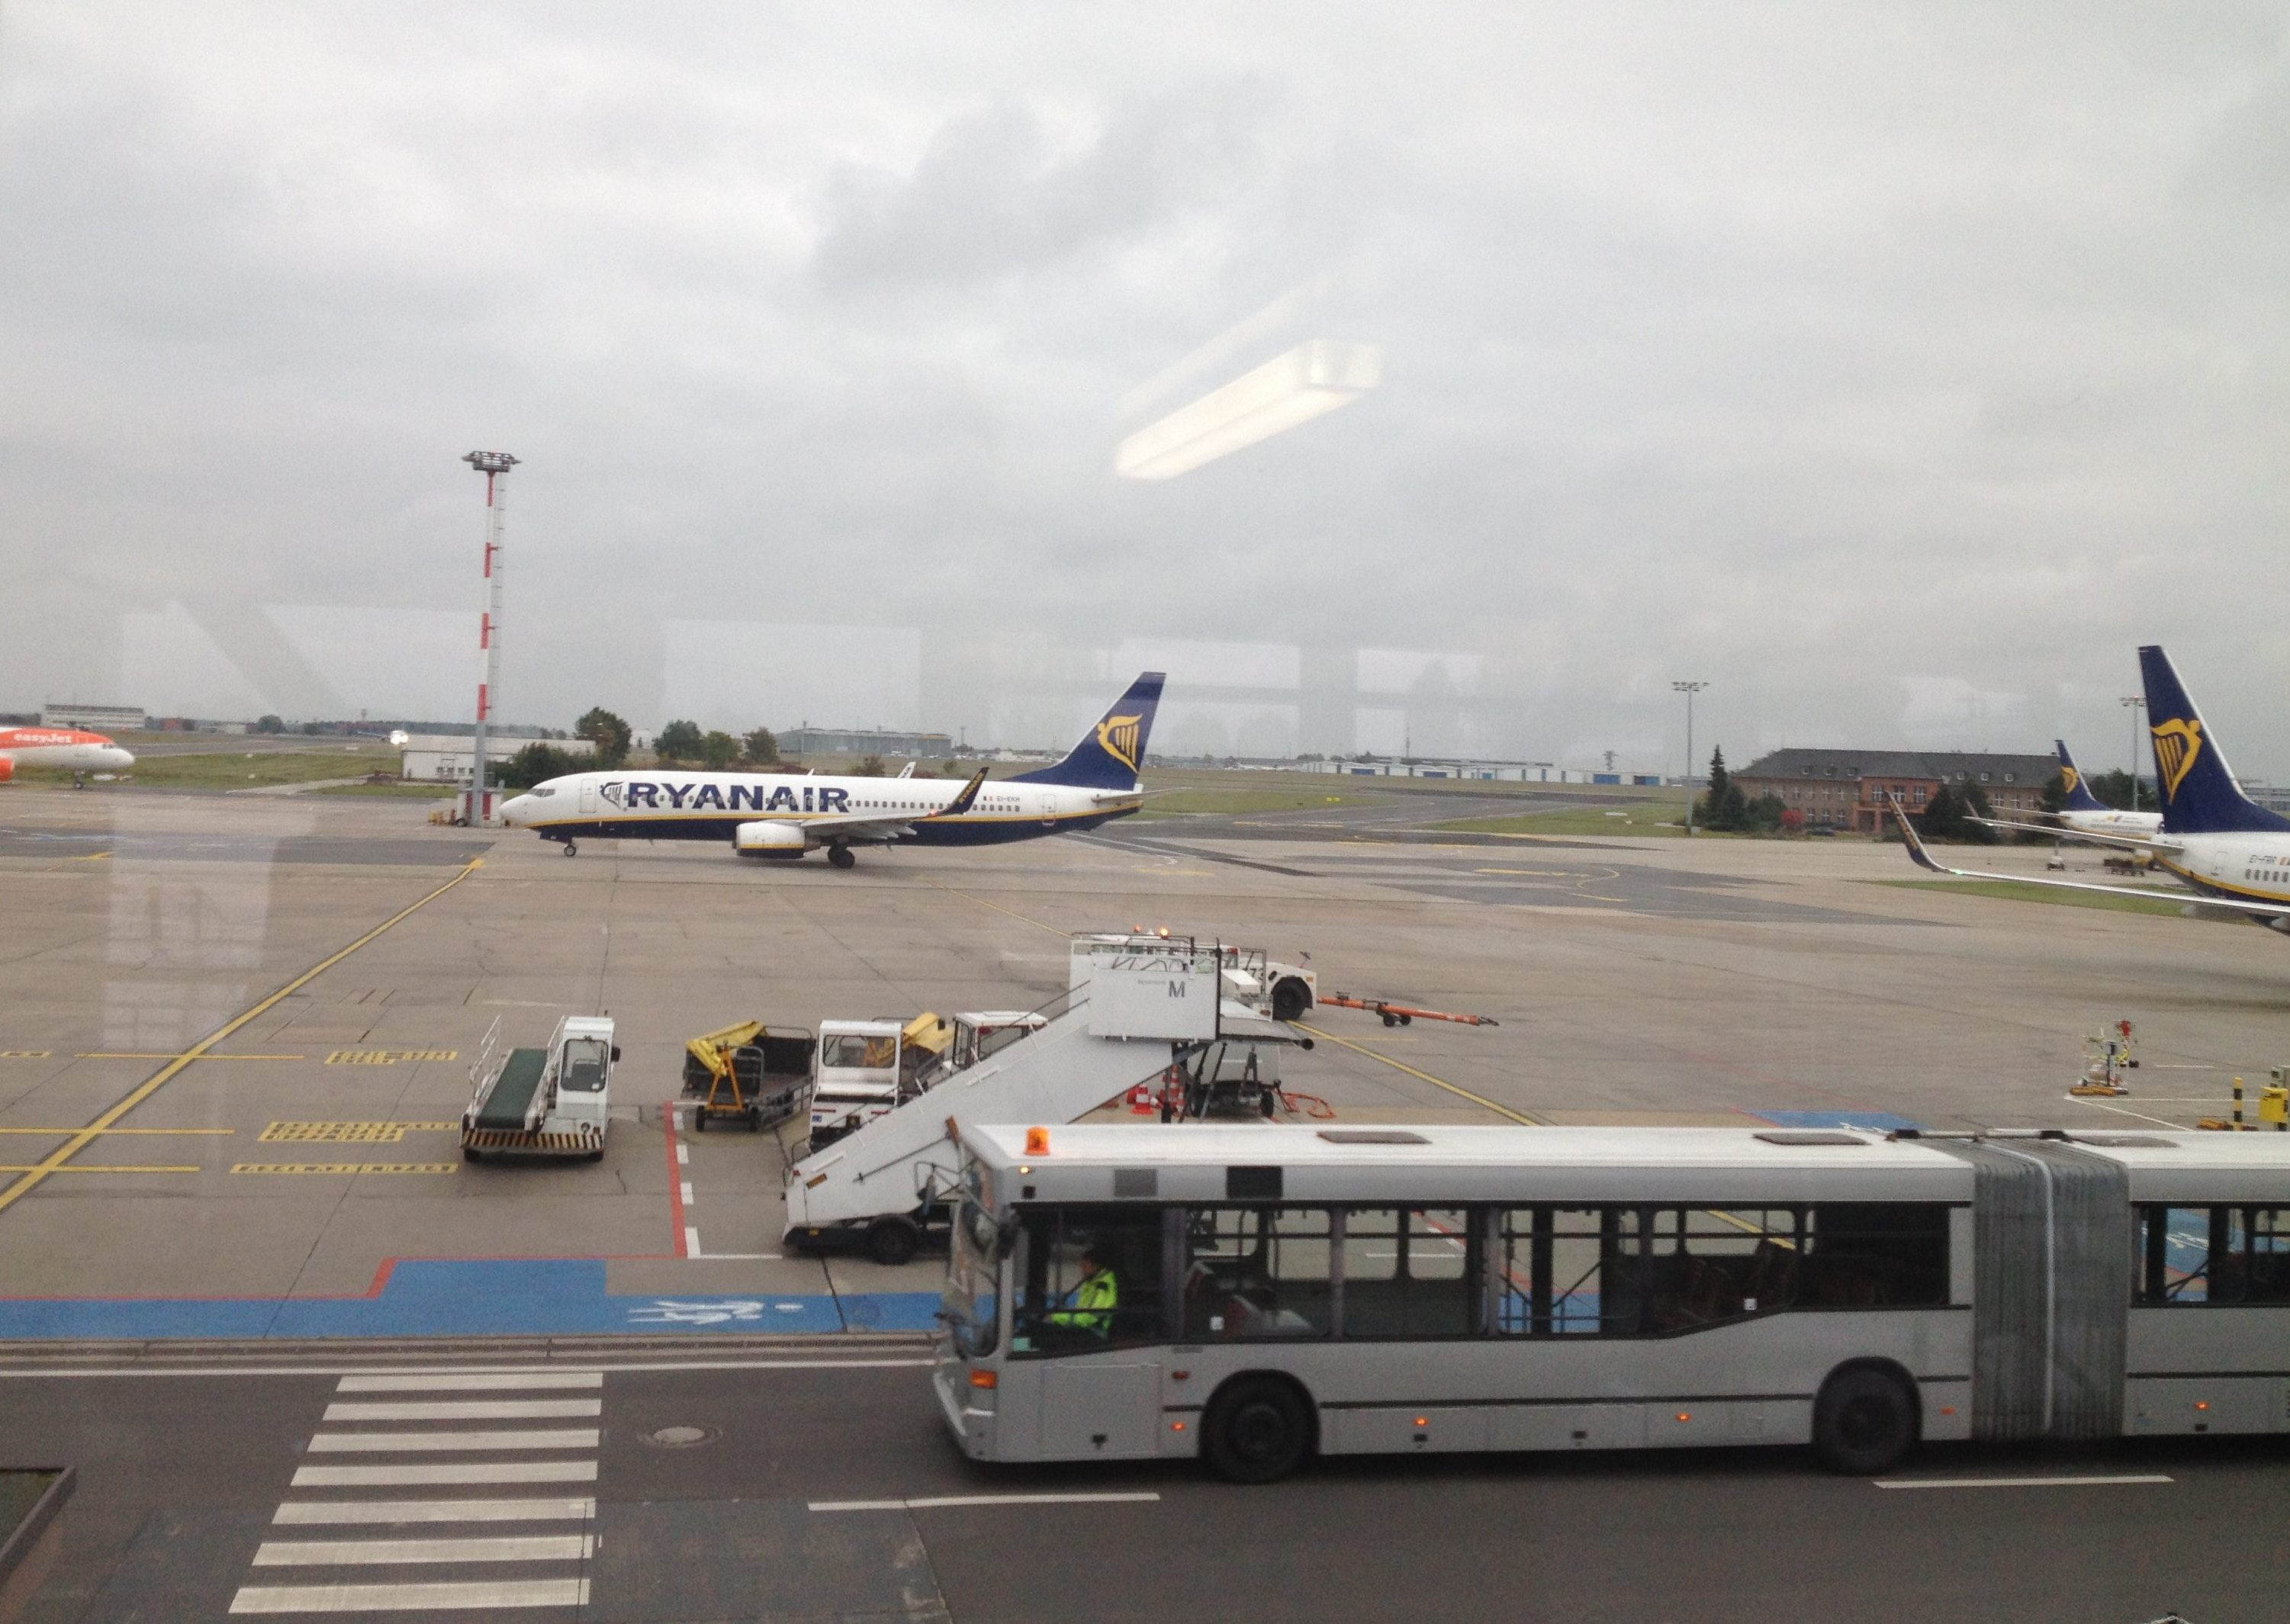 Berlin Schönefeld Ryanair Gate Ryanair Really Getting Better Pennyblog